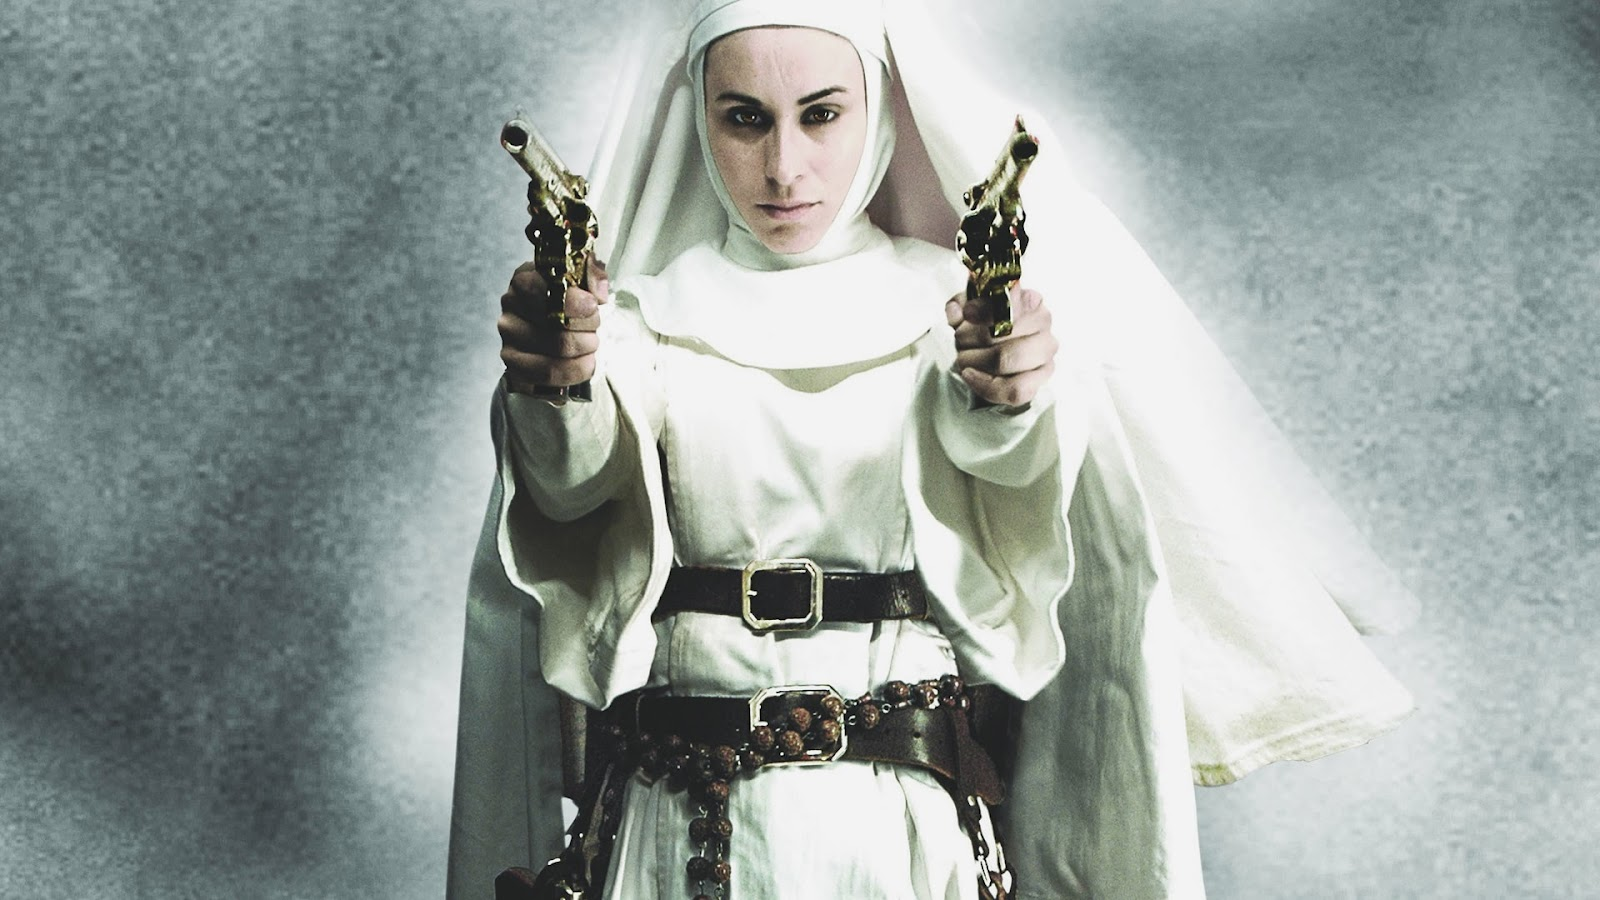 Nude+Nuns+with+Big+Guns ... and out of sheer panties & stockings, playing with her full mature bush.